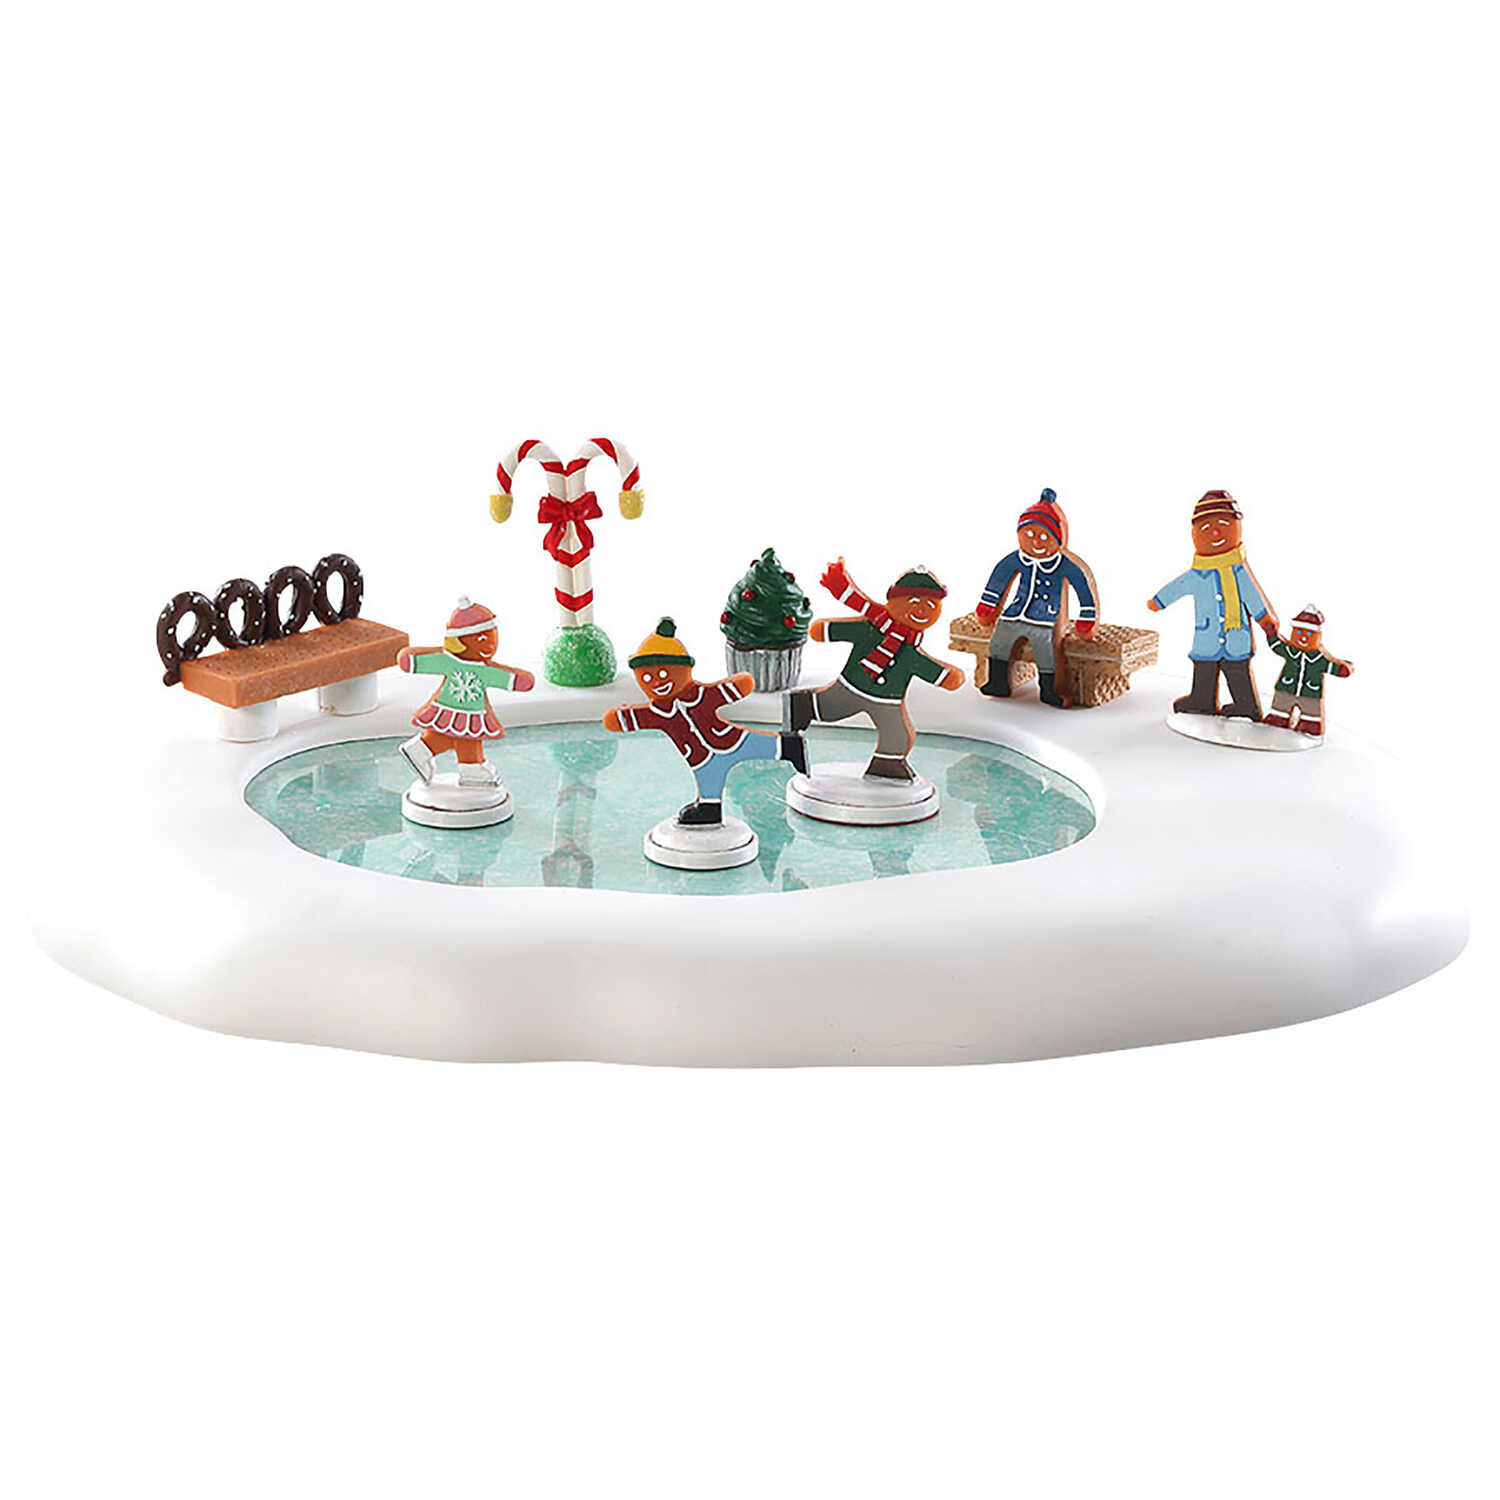 Lemax  Christmas Gingerbread Skating Pond  Tabletop Decoration  Multicolored  Resin  1 pk